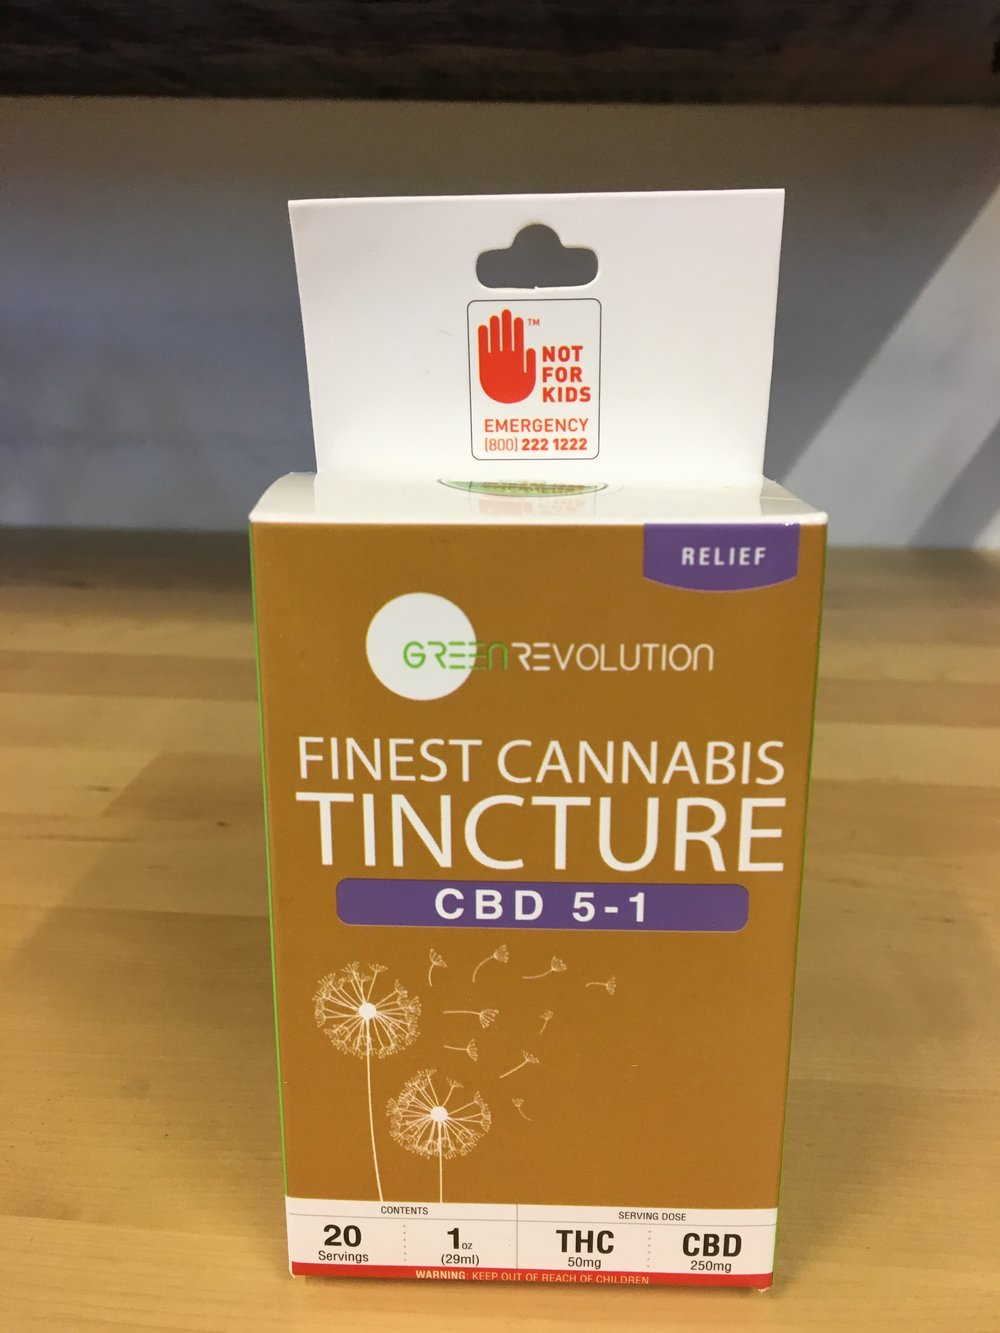 Green Revolution CBD Water Based Sublingual Tincture